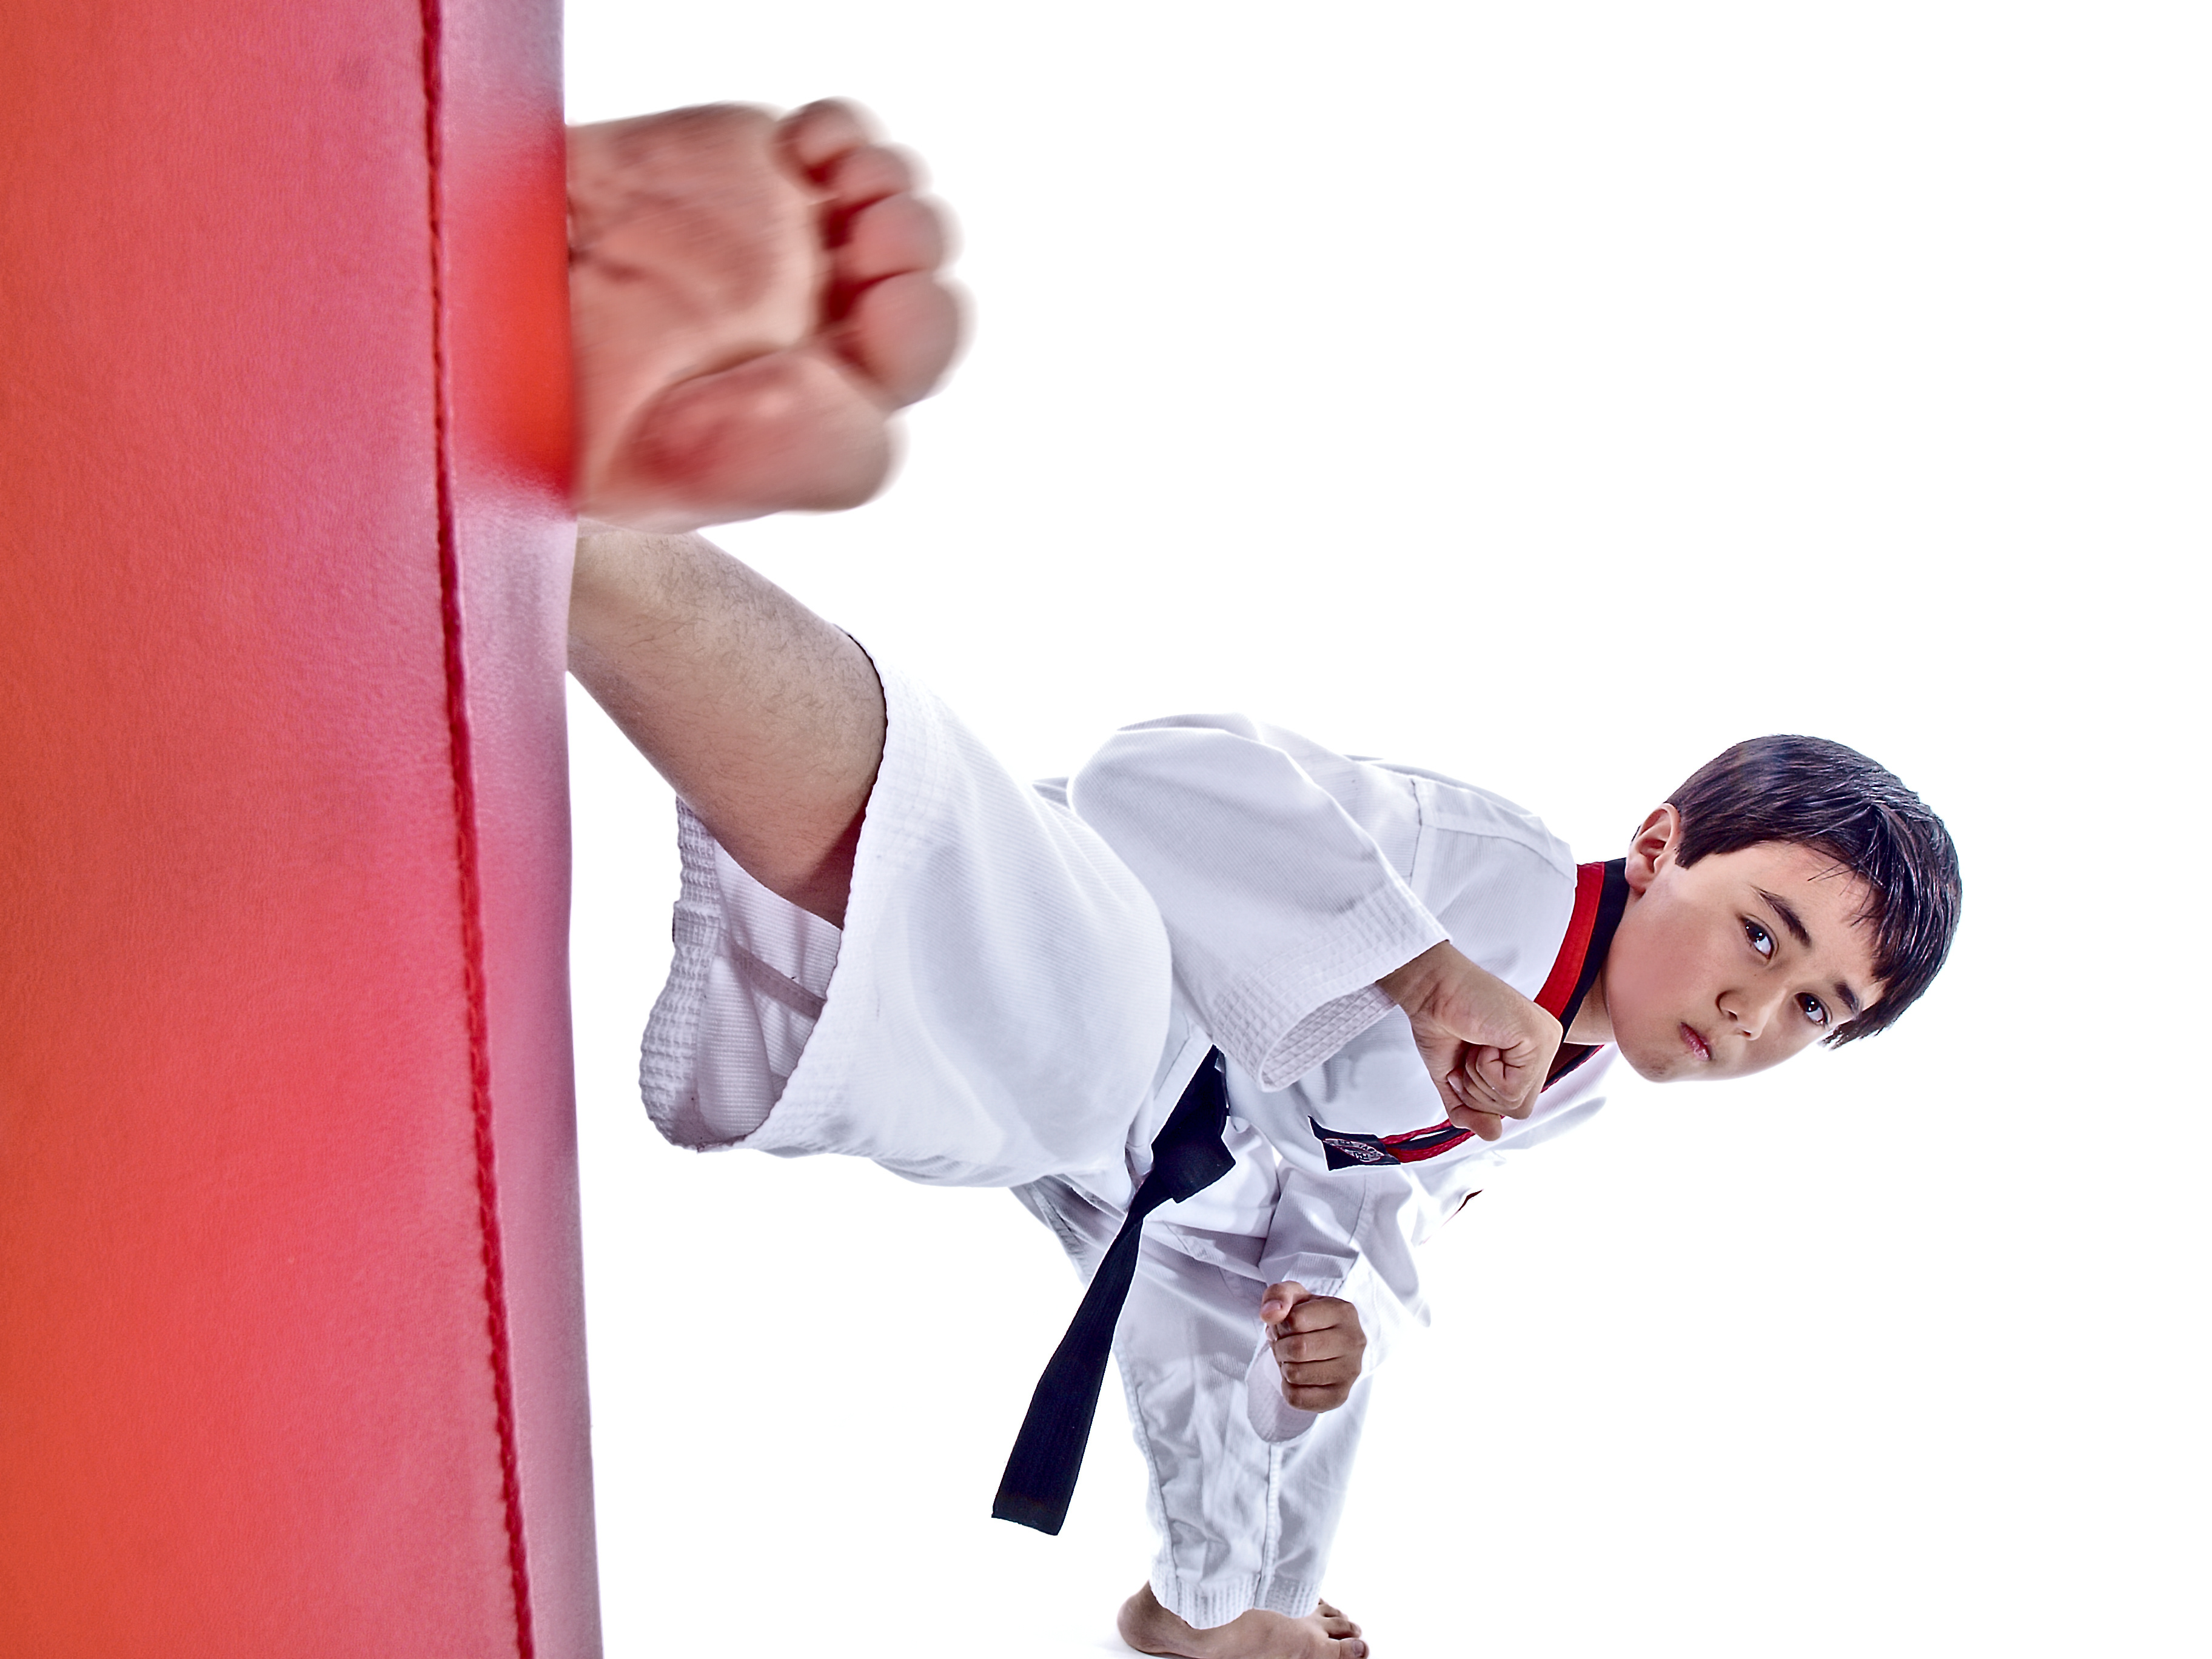 Kids' Martial Arts and Karate Classes: A Parent's Guide